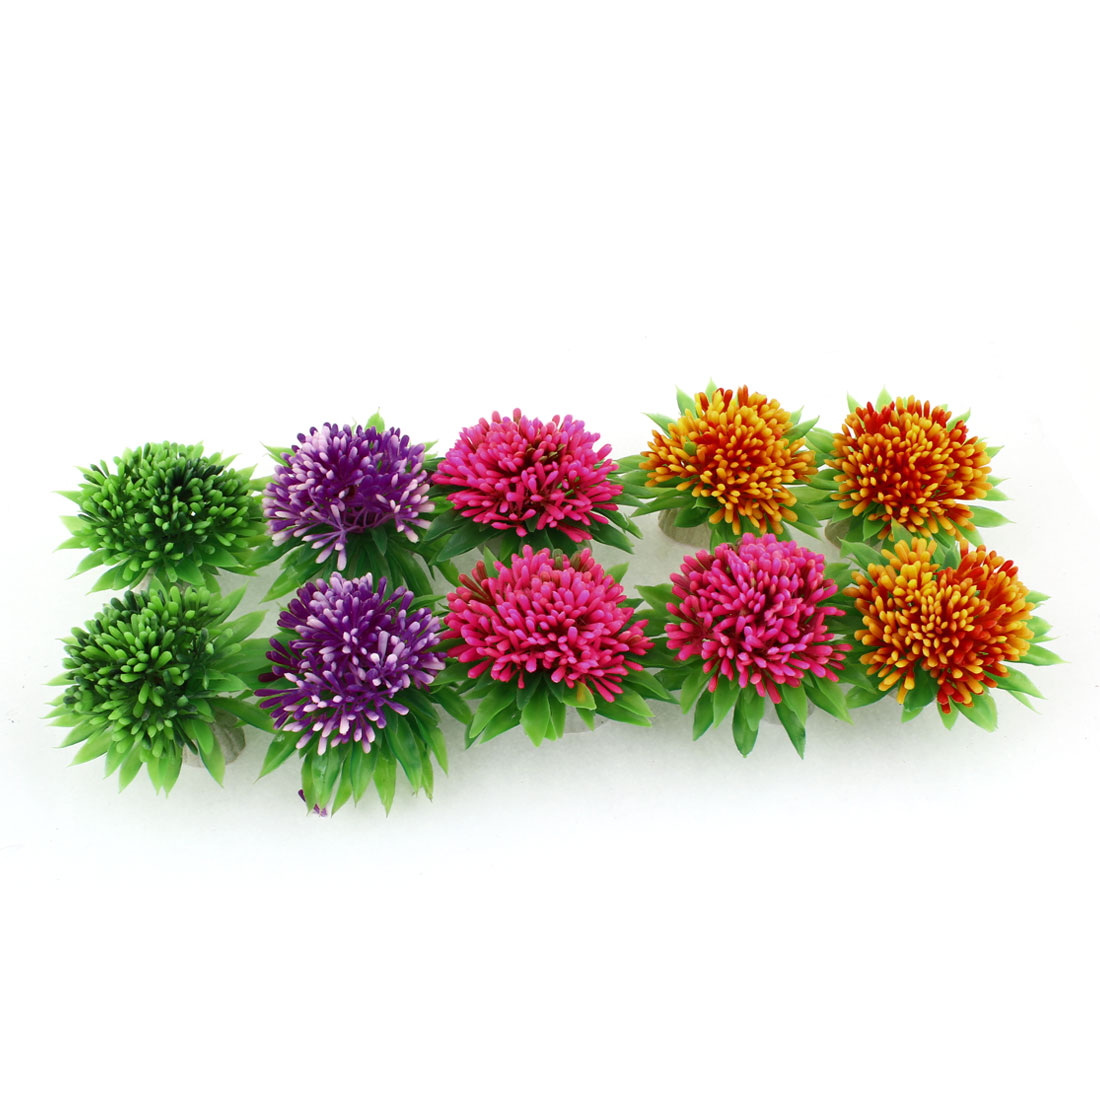 "10 Pcs Underwater Sunflower Plastic Grass Plant 2.8"" Height Ornament"